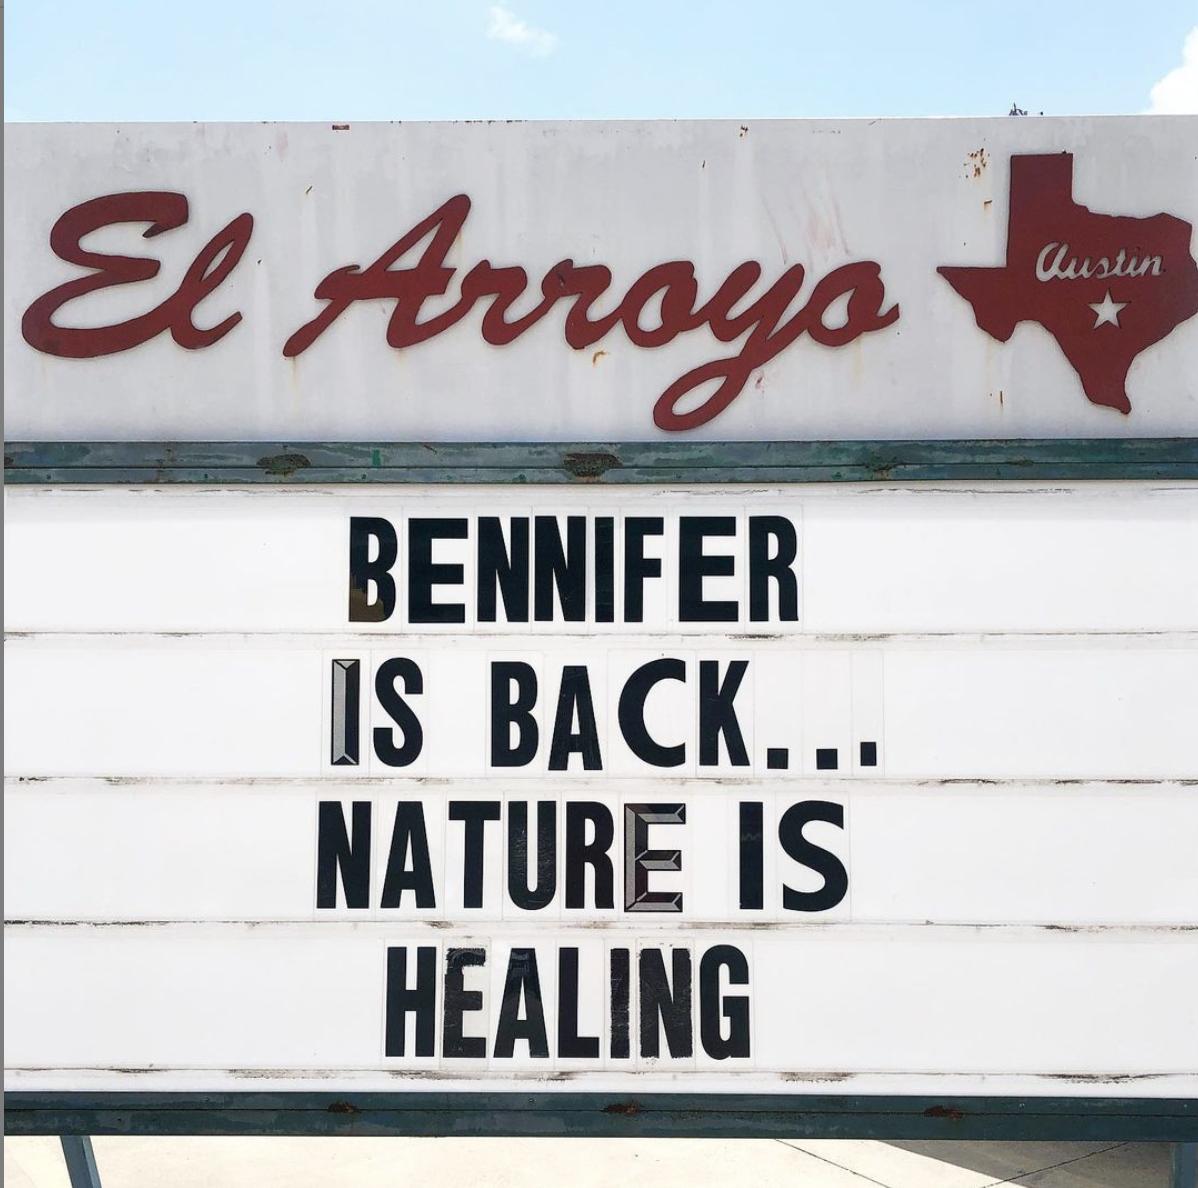 Quoted by El Arroyo! That's when you know it's real! [1198 x 1188] 5/25/2021